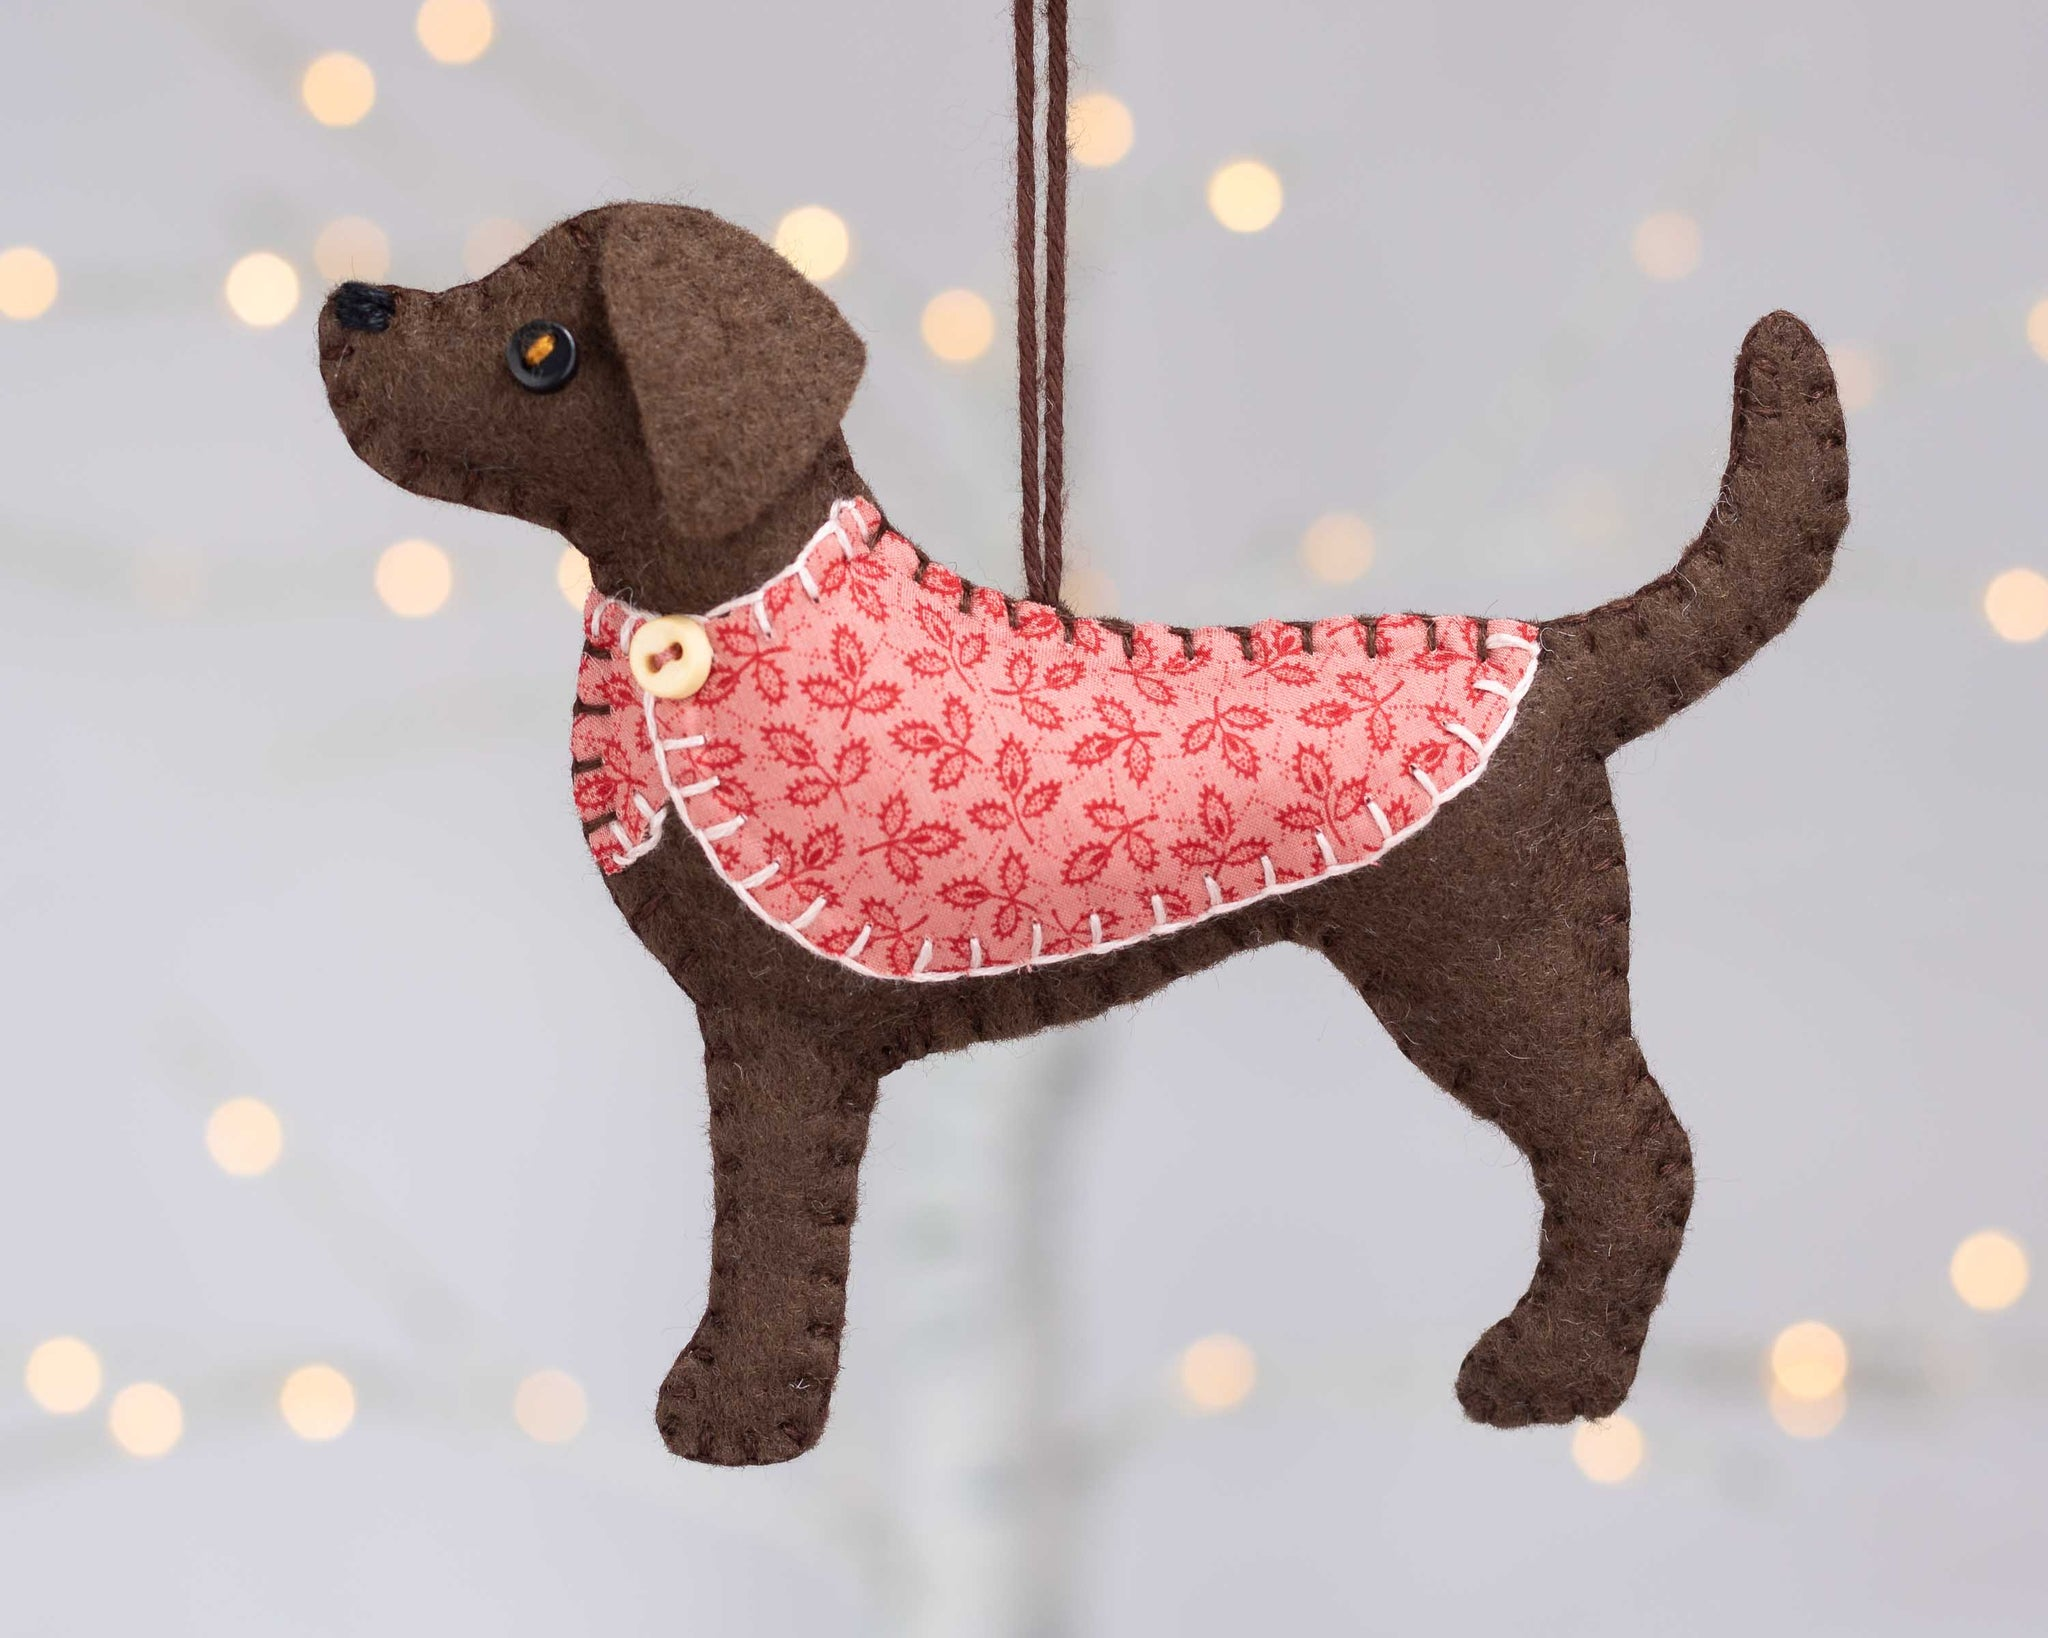 Chocolate Labrador Christmas ornament – Tilly & Puffin